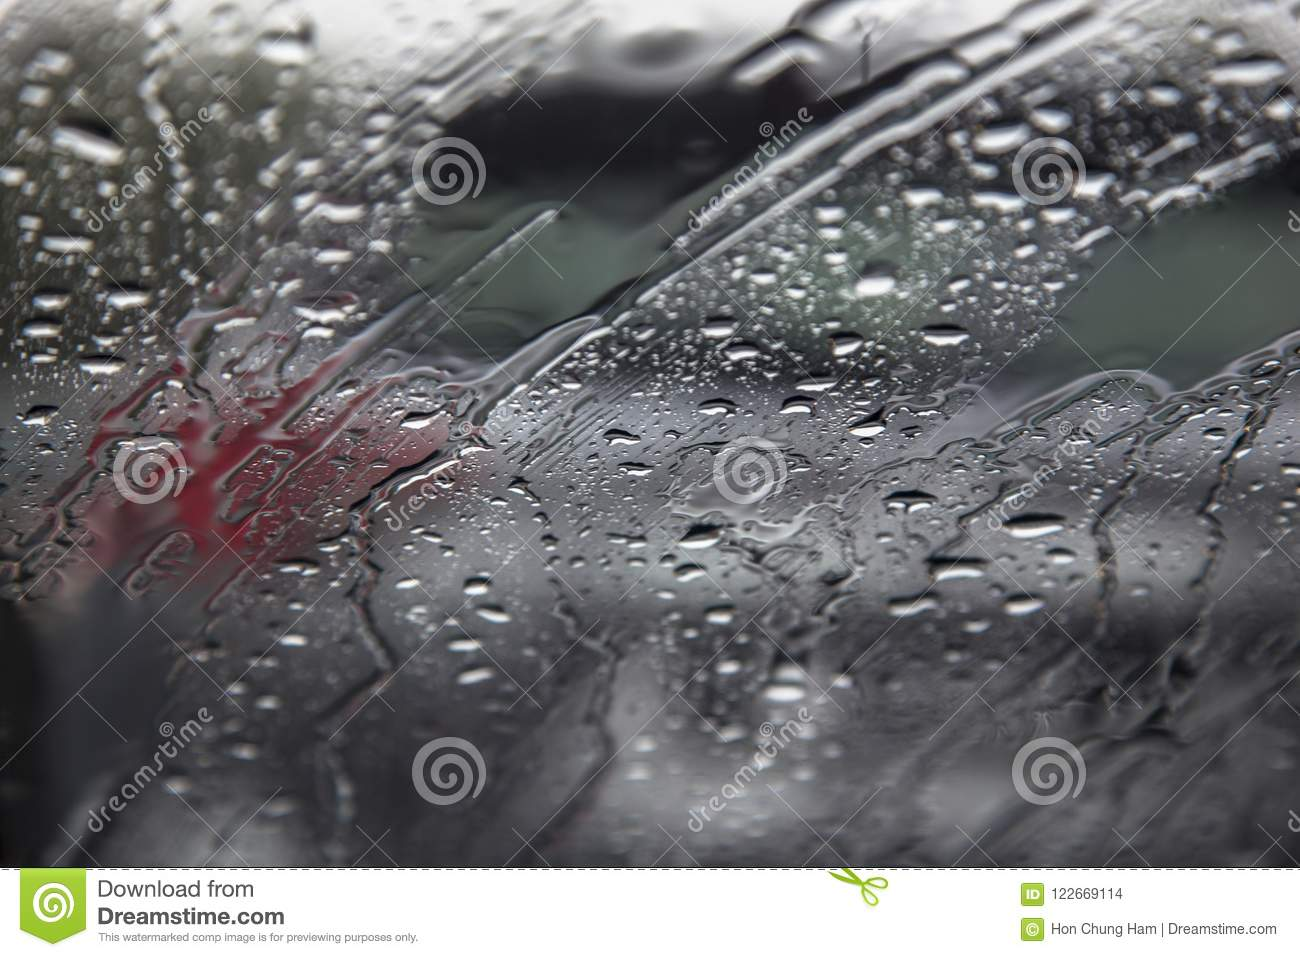 Outdoor bike stunt activity of a cyclist on a bicycleClose up texture abstract background of raindrop on car windscreen window